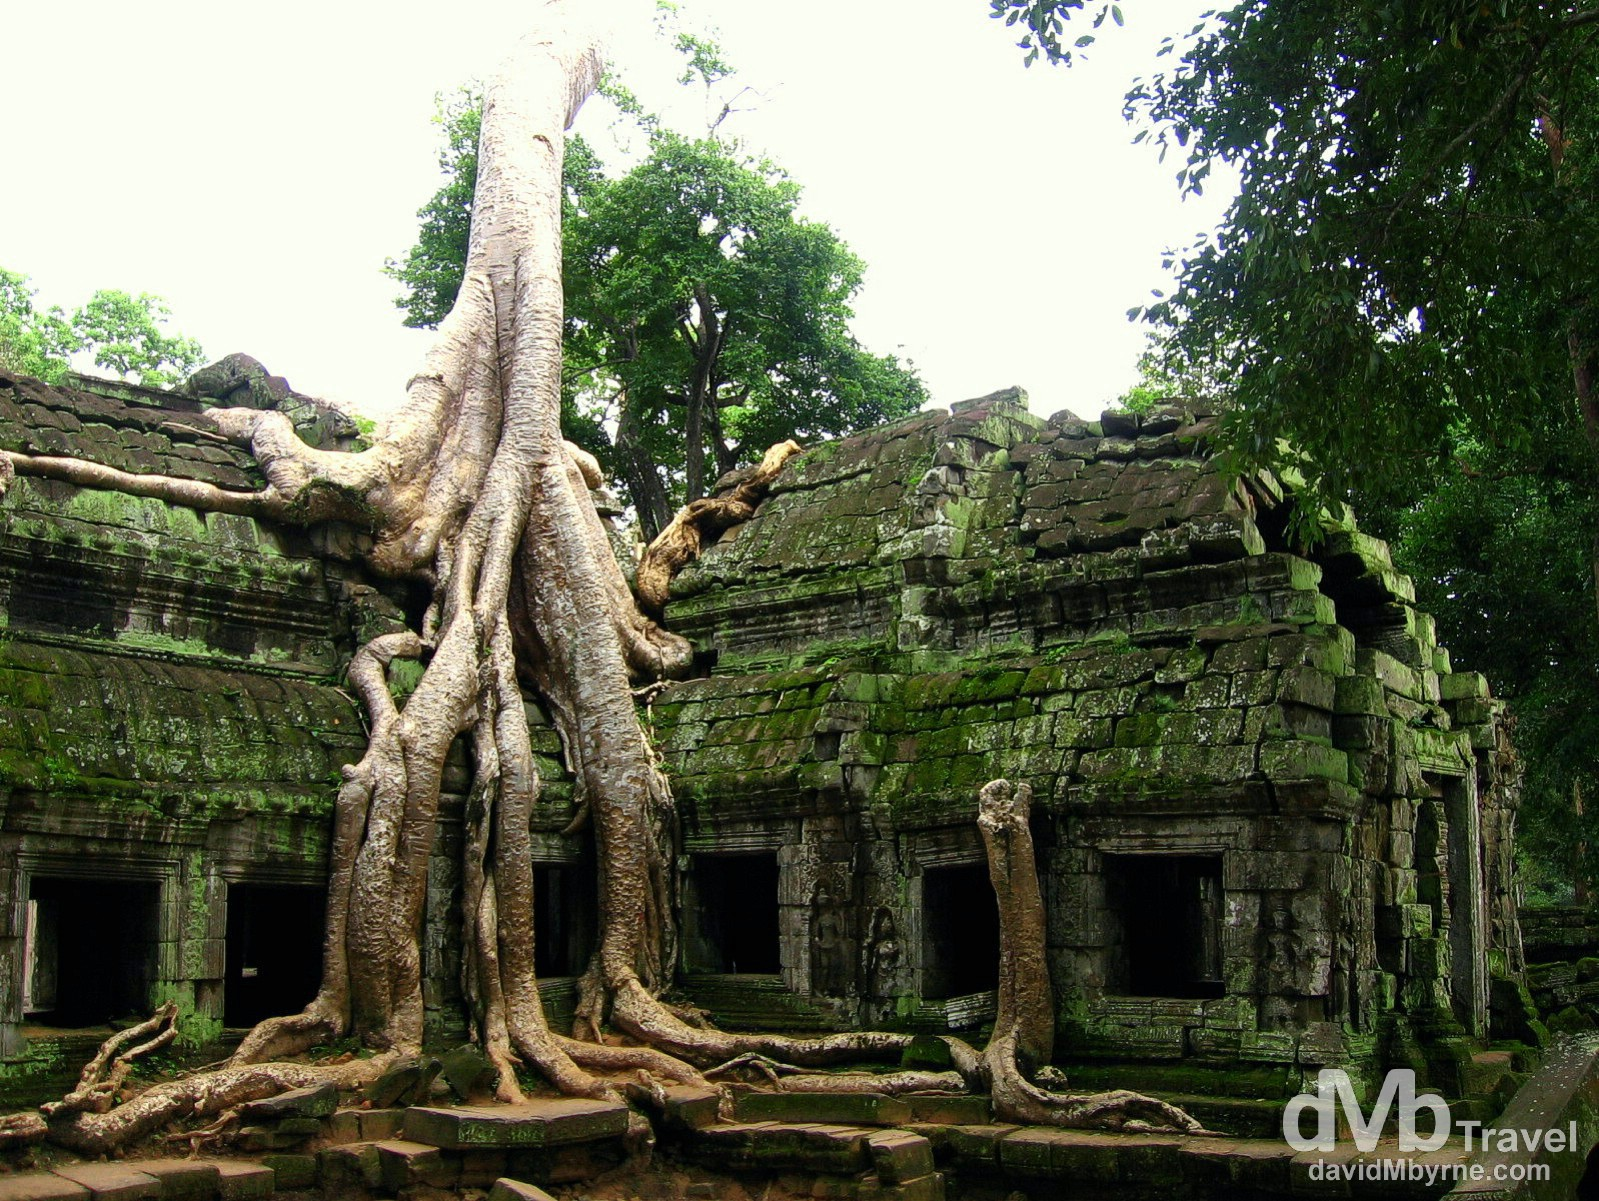 Jungle growth envelops a section of the temple Ta Prohm of the Angkor temple complex, Siem Reap, Cambodia. September 20th 2005.